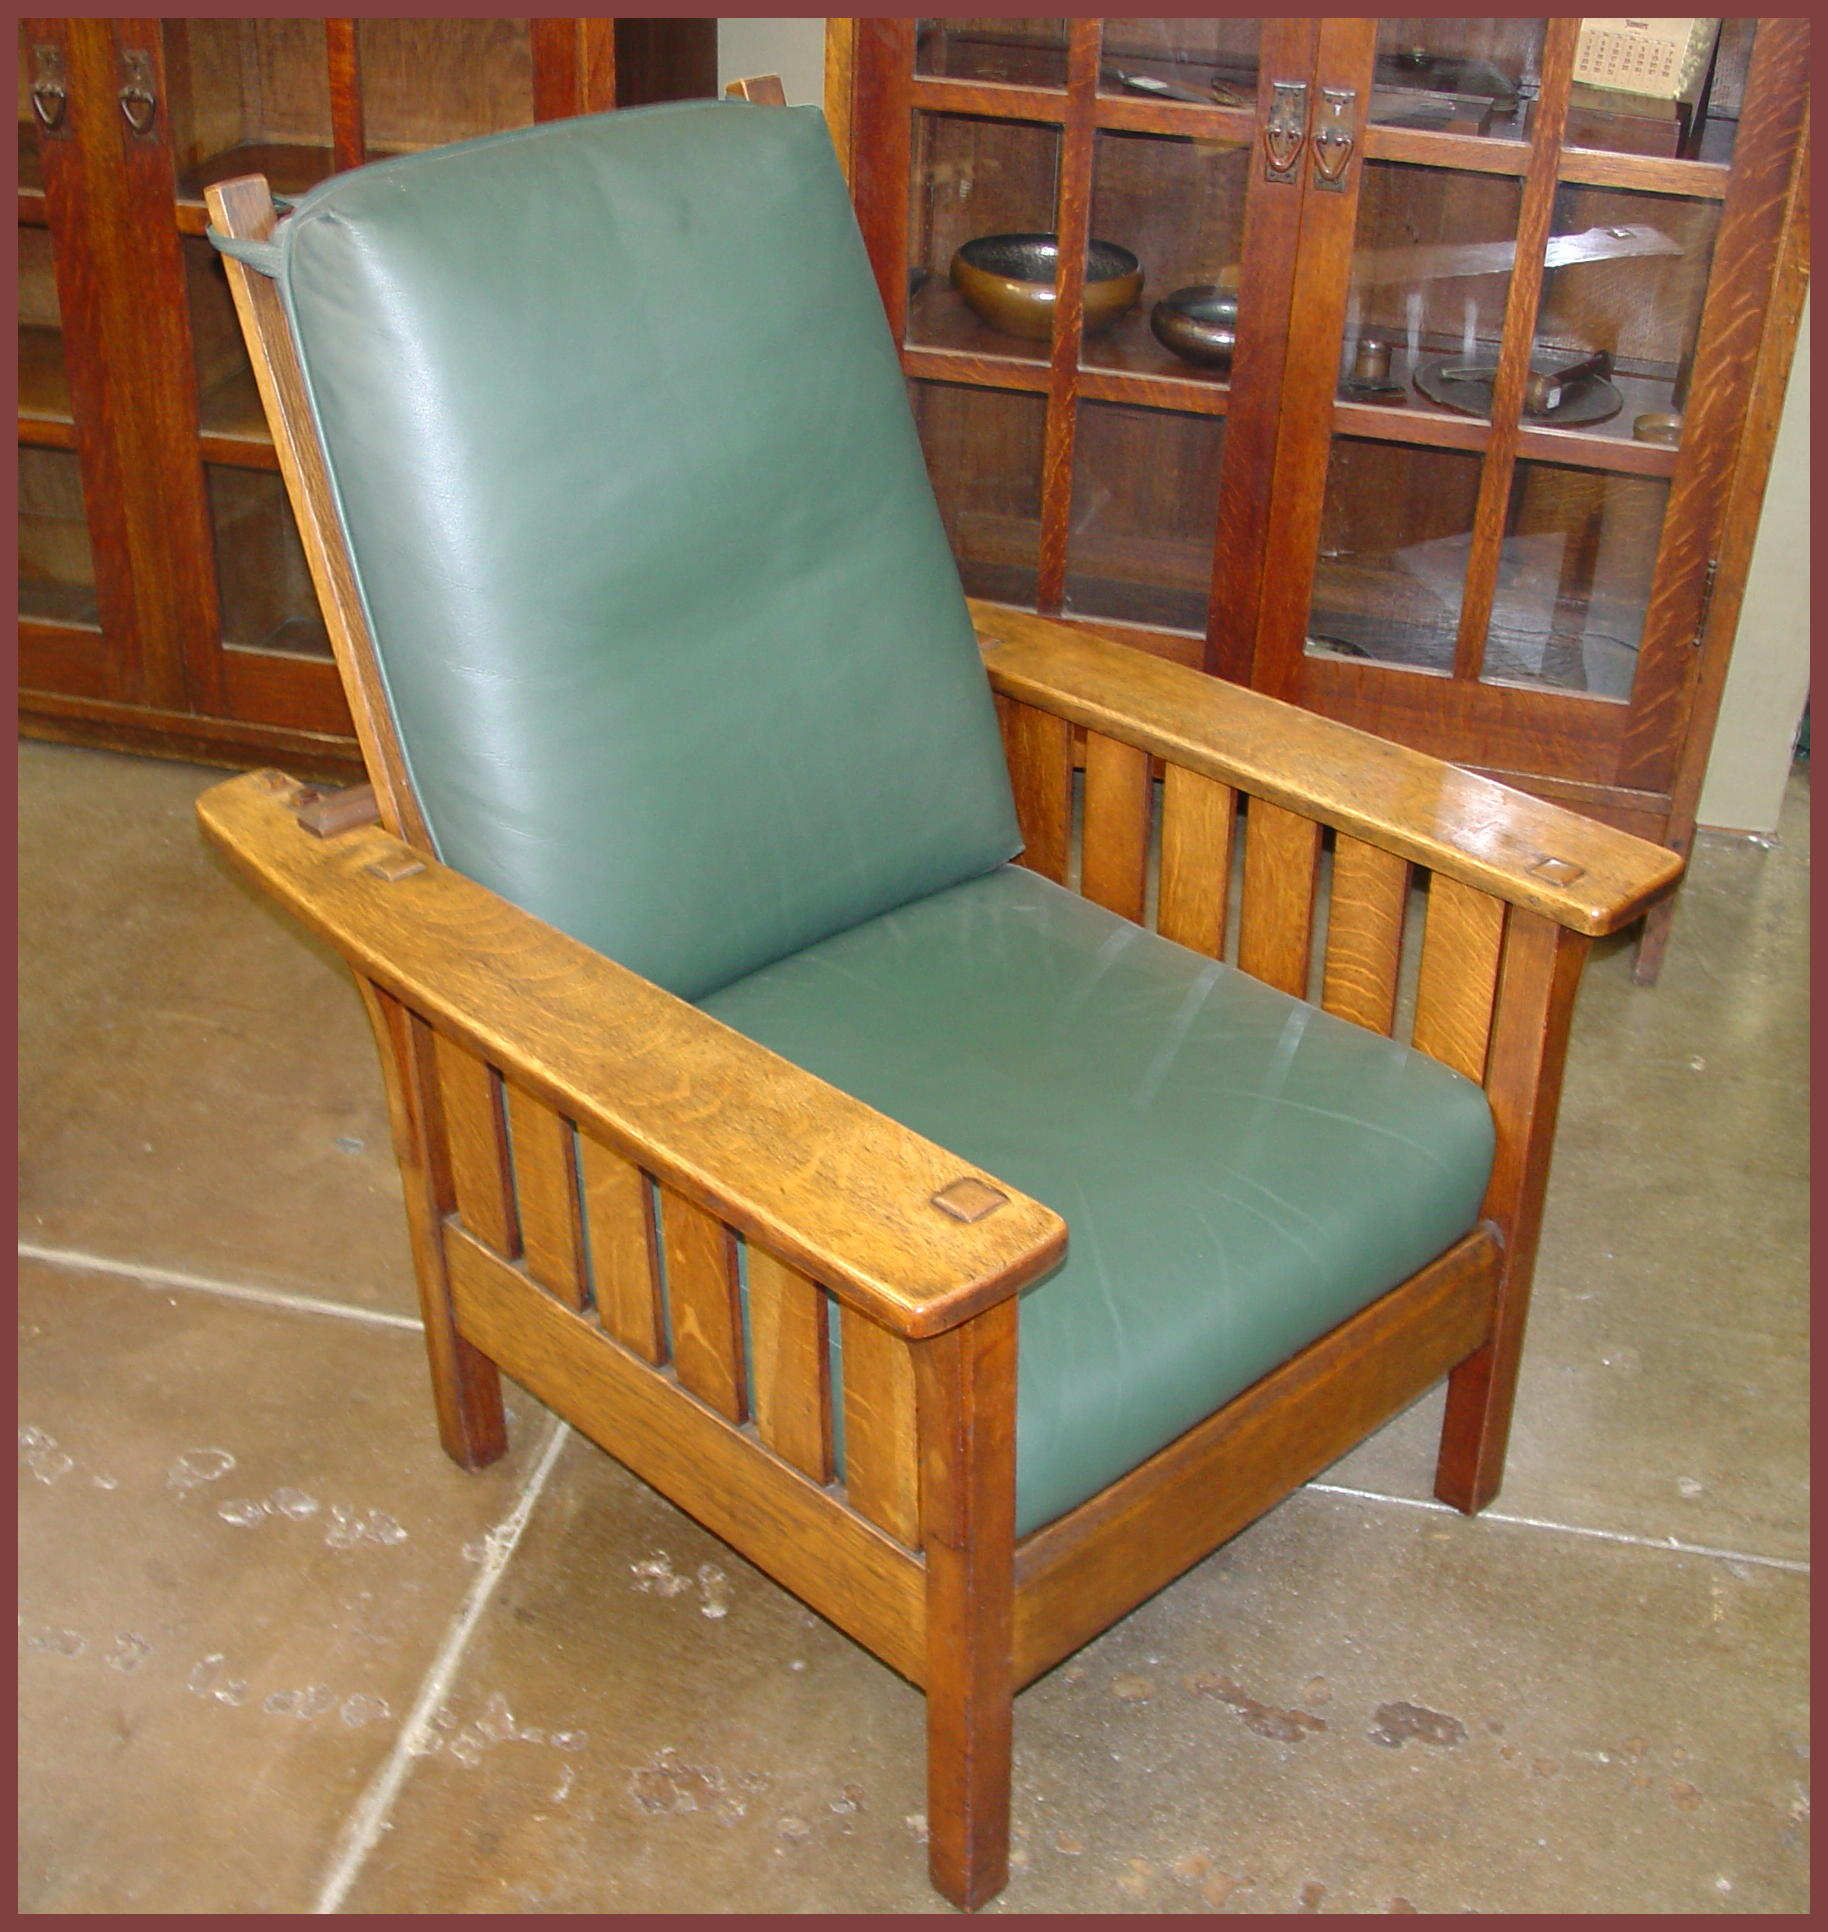 Morris Chairs Voorhees Craftsman Mission Oak Furniture L And J G